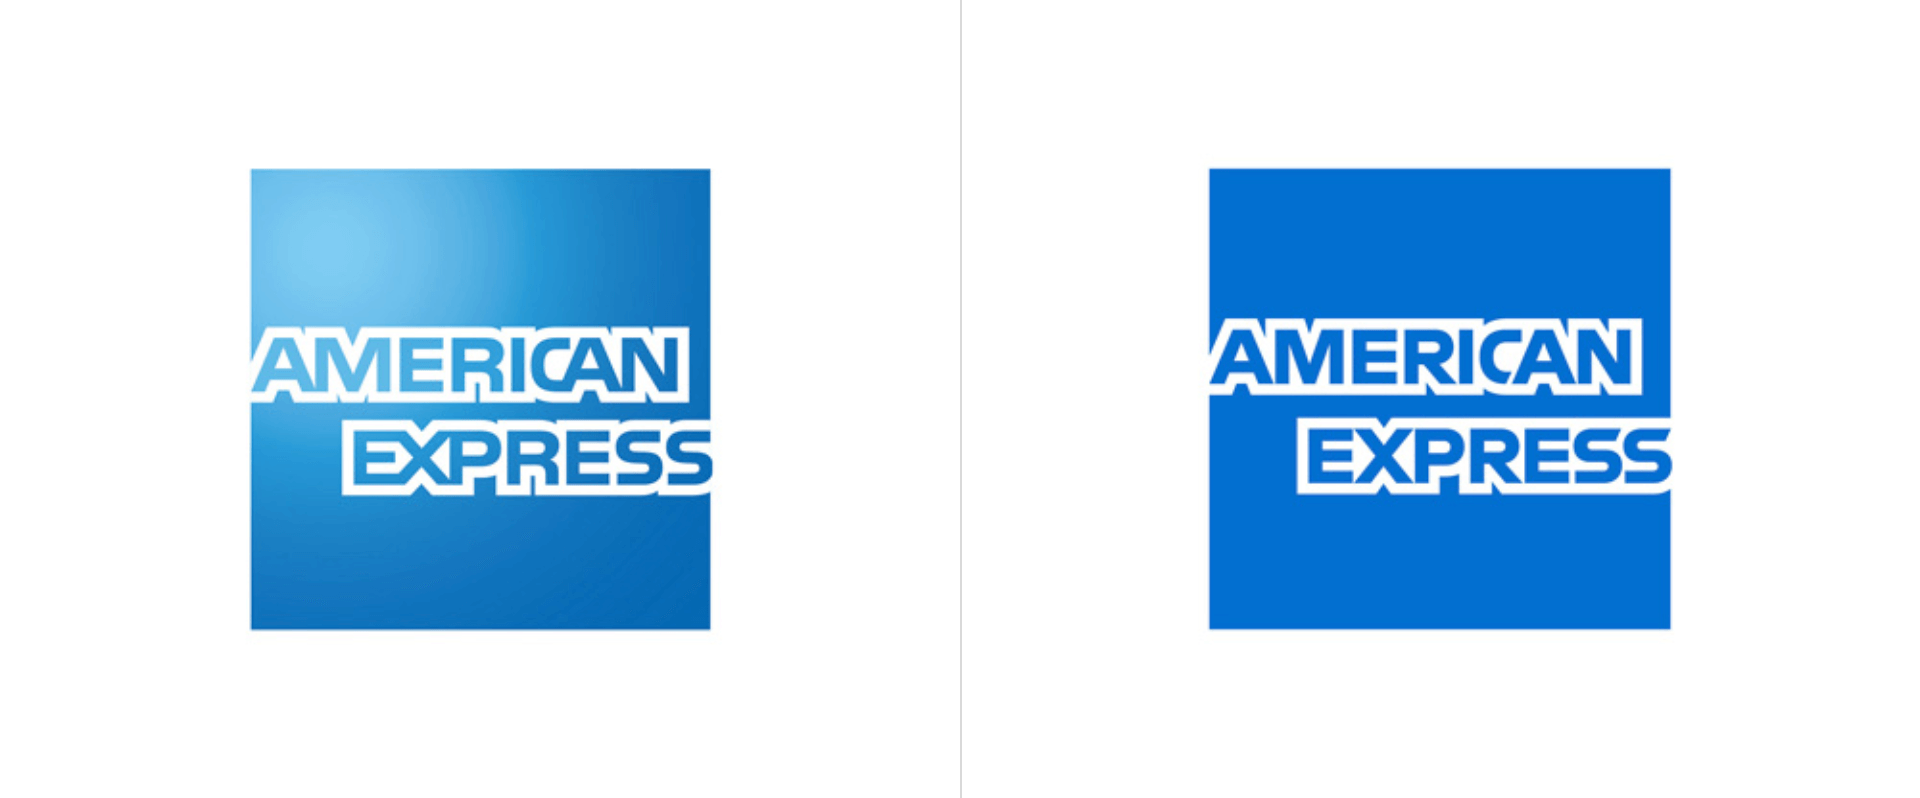 AMEX before and after